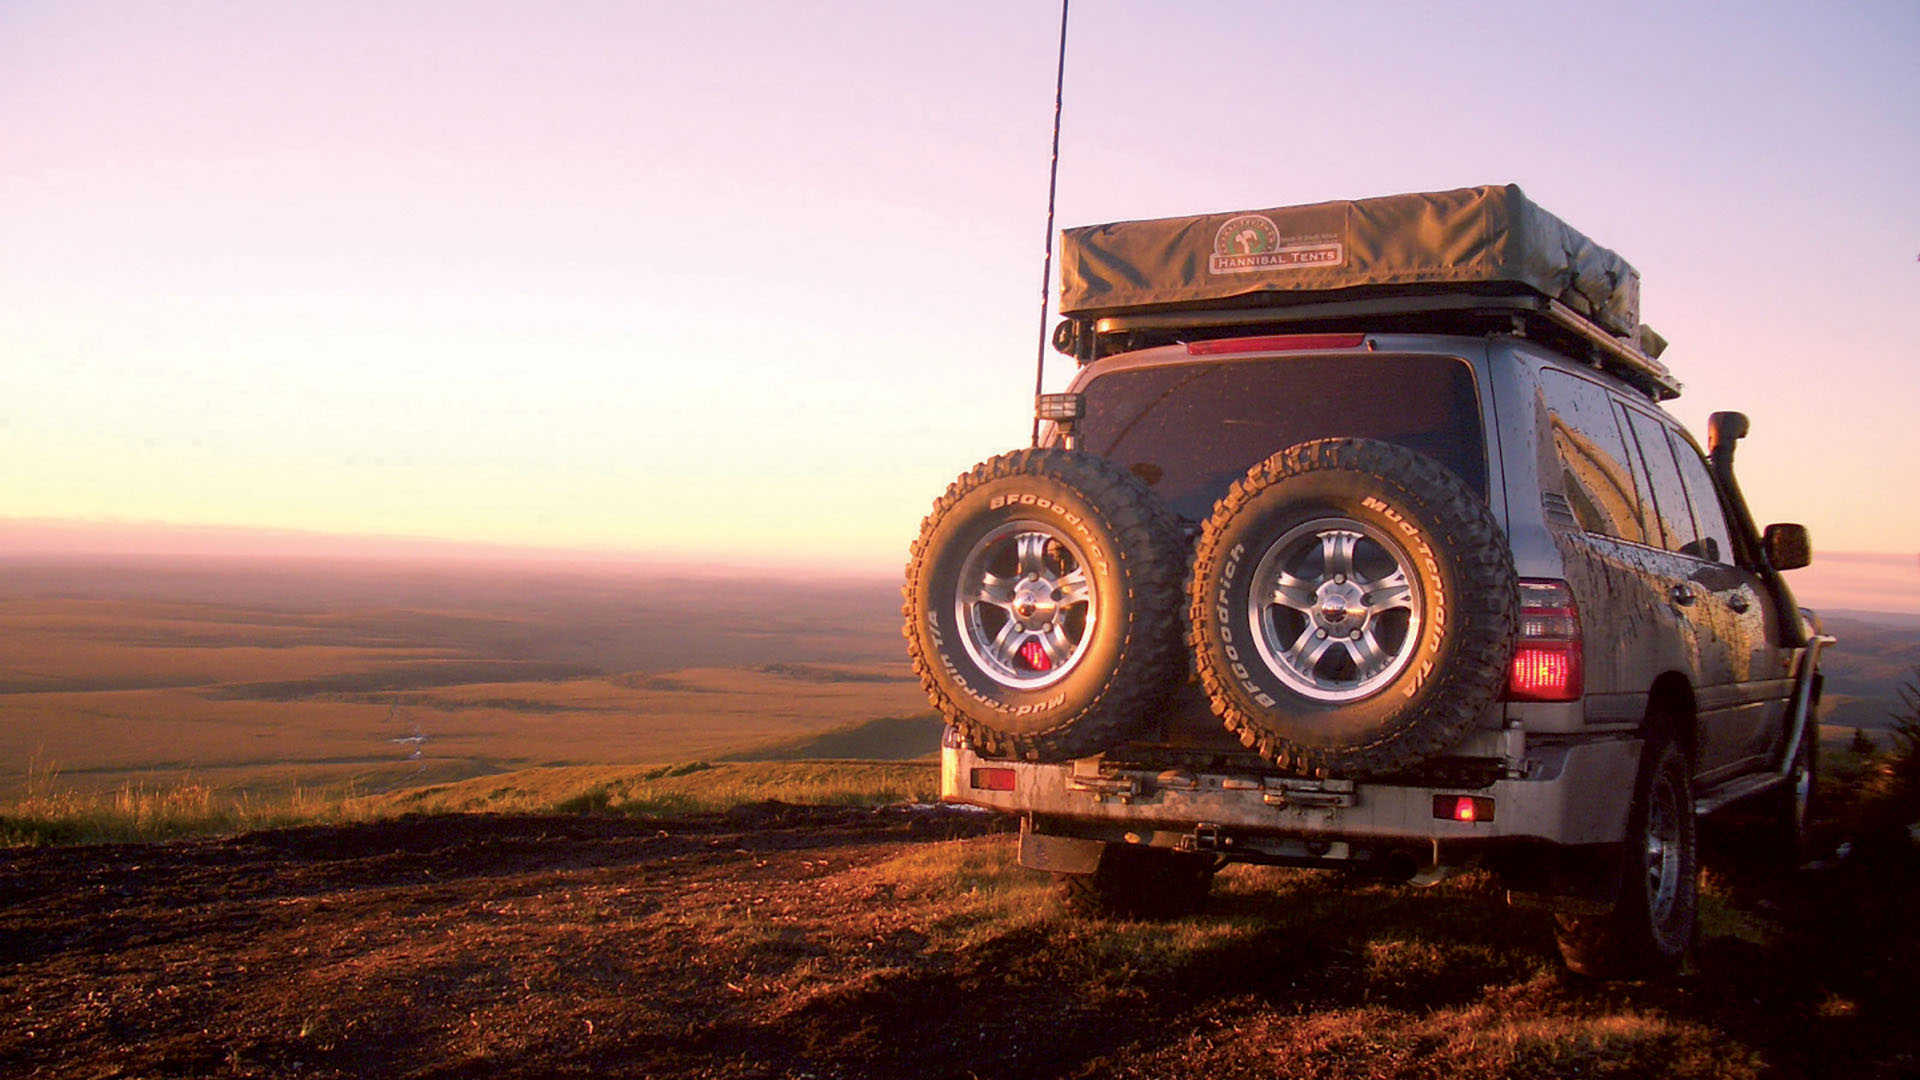 Hannibal Safari the world's toughest rooftop tents